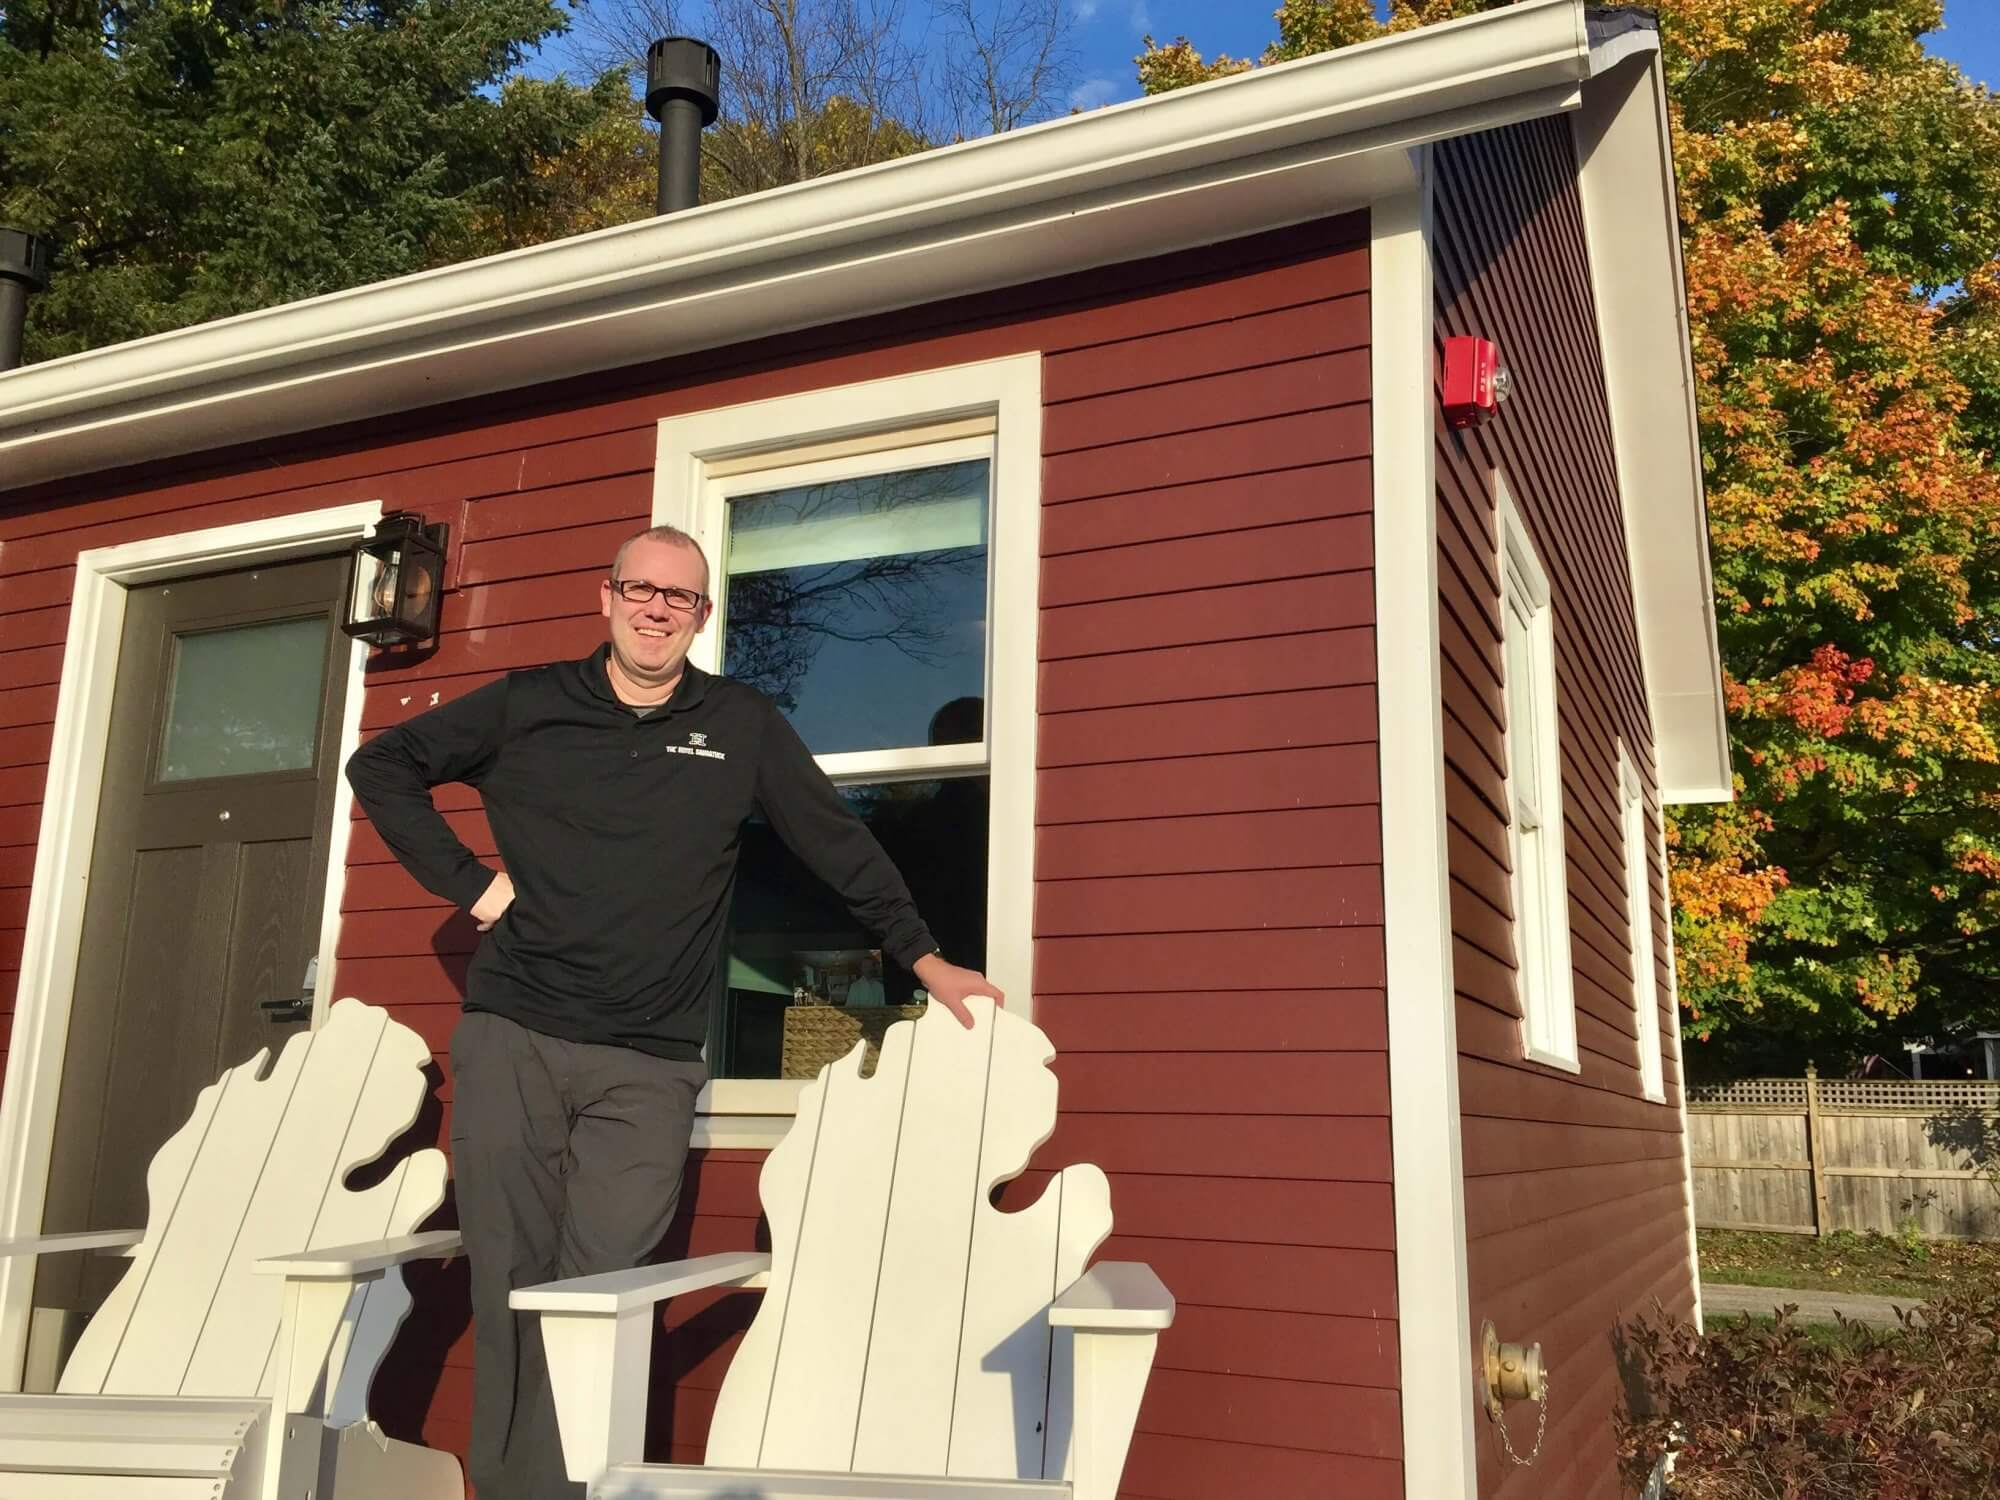 Owner Al Heminger outside one of the bungalows at Hotel Saugatuck